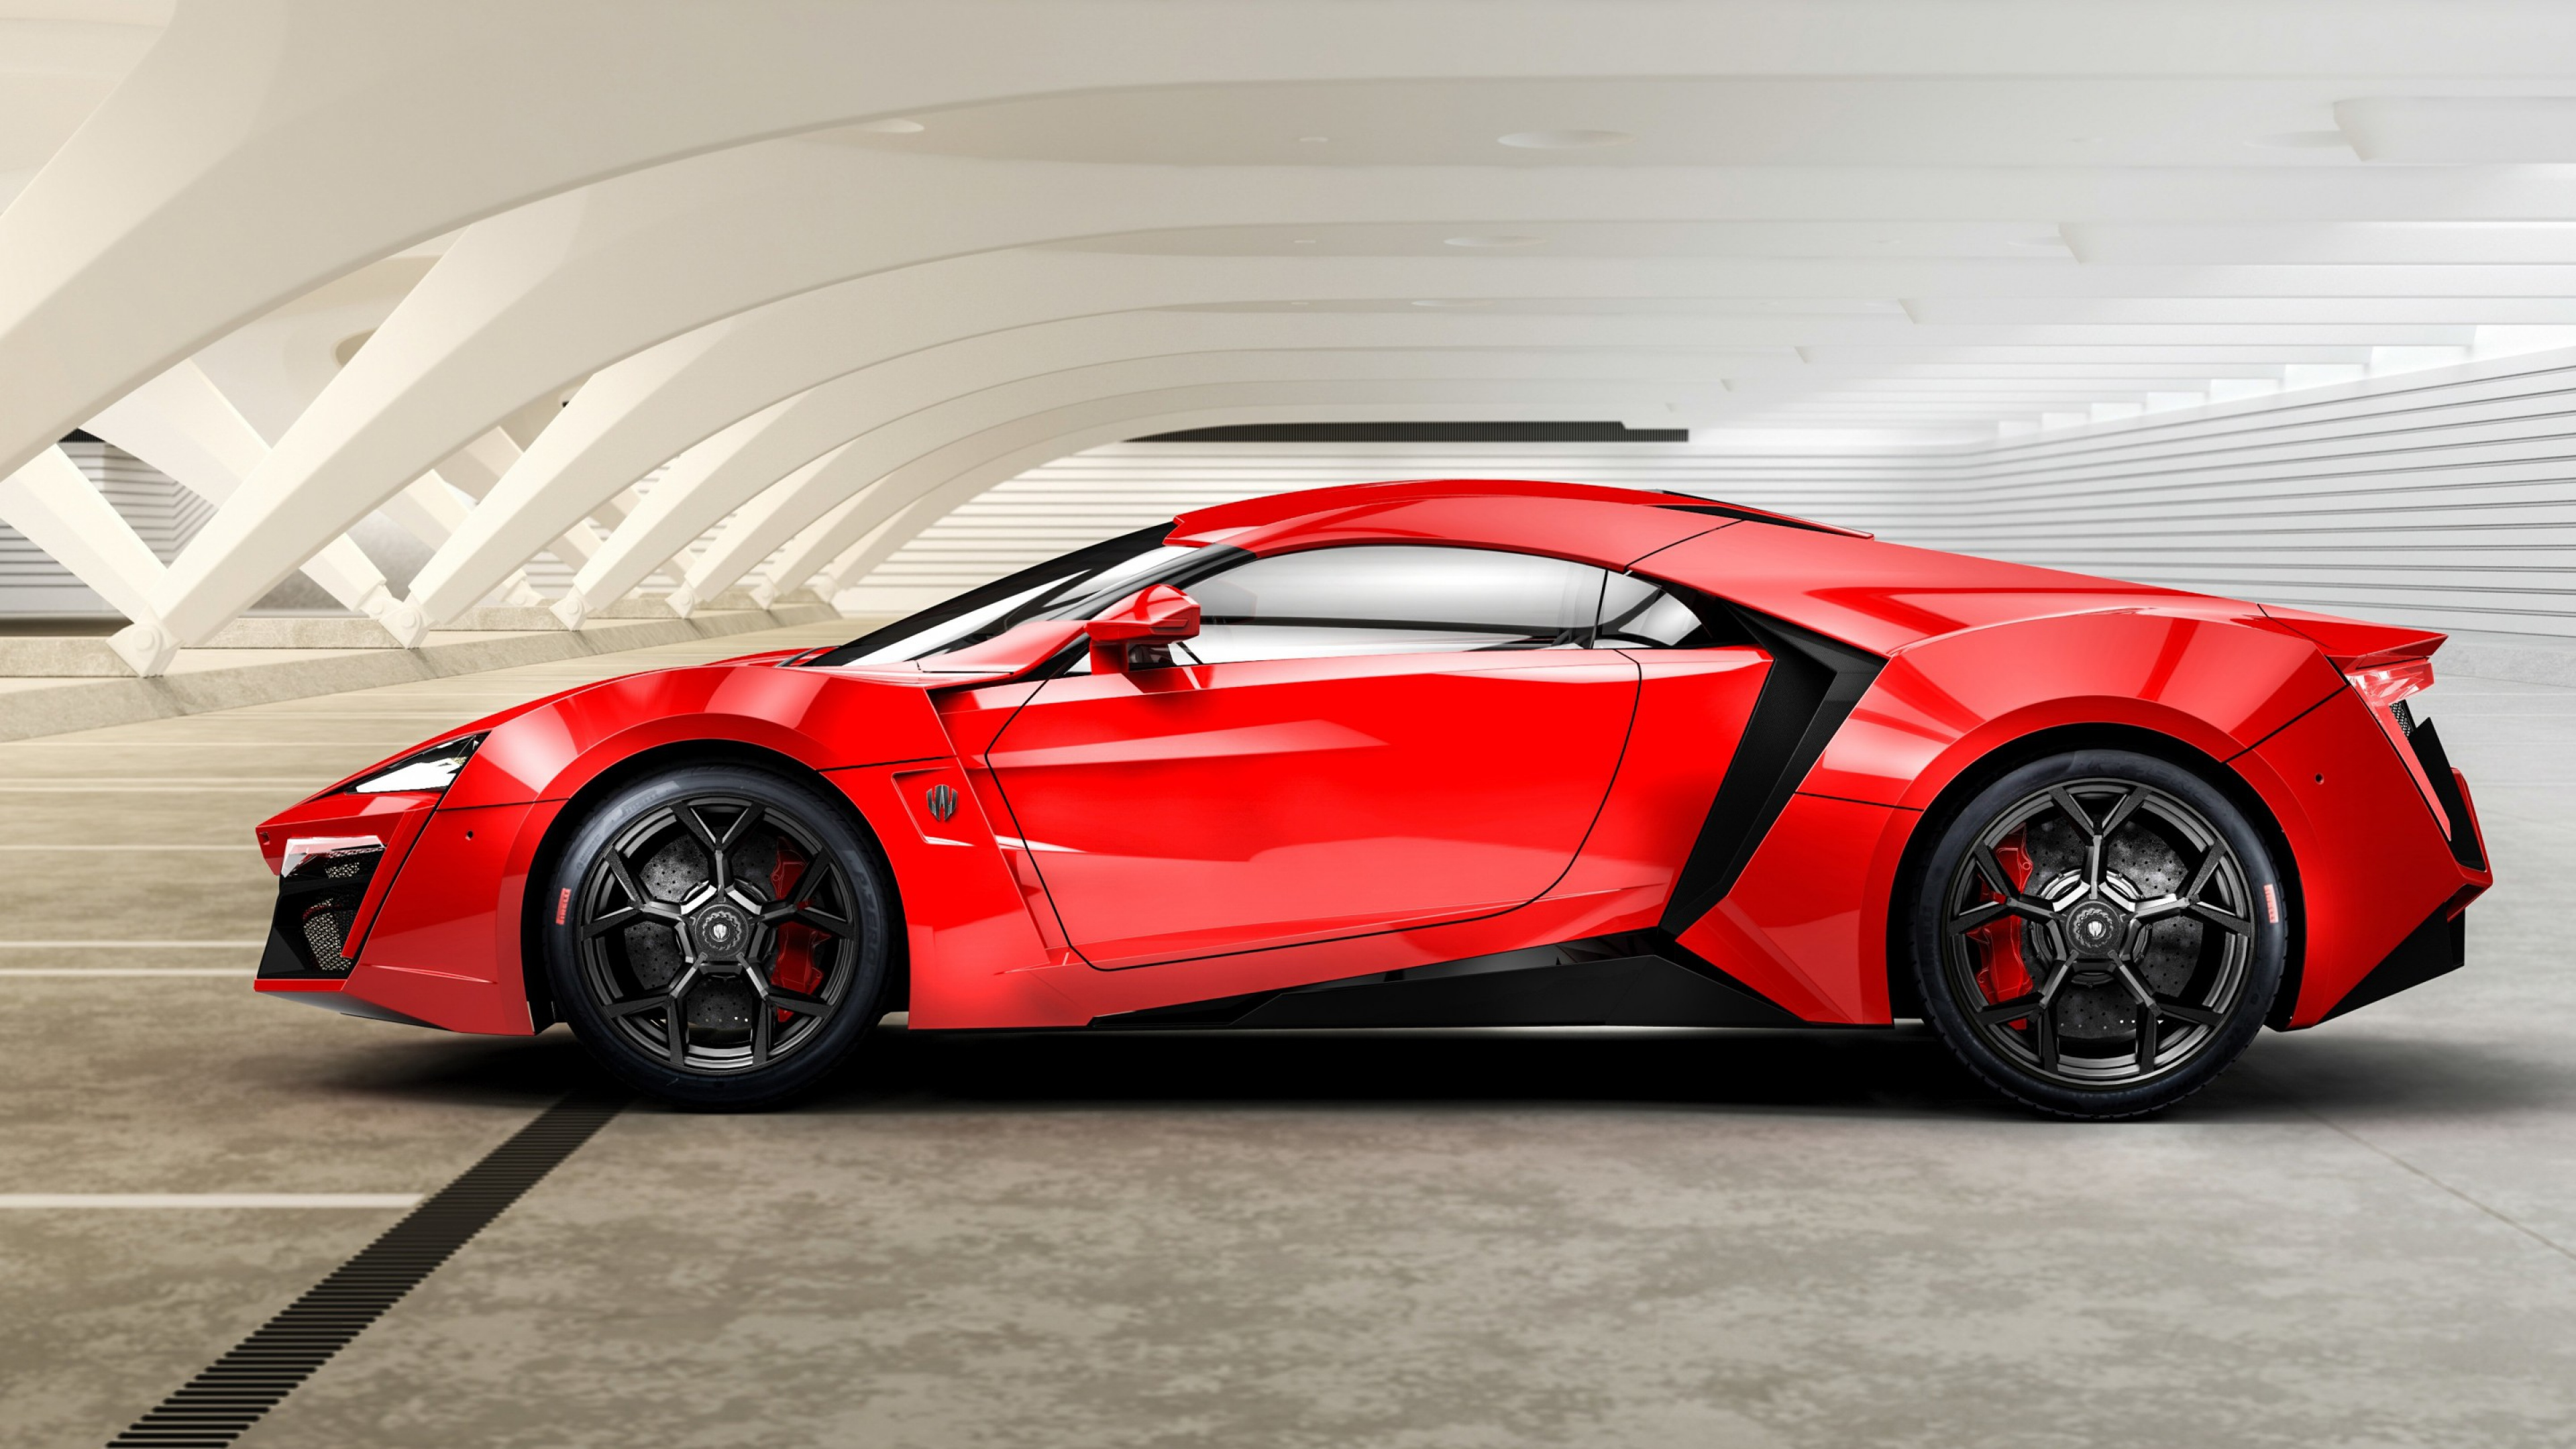 lykan_hypersport_w_motors_red_side_view_102232_3840x2160